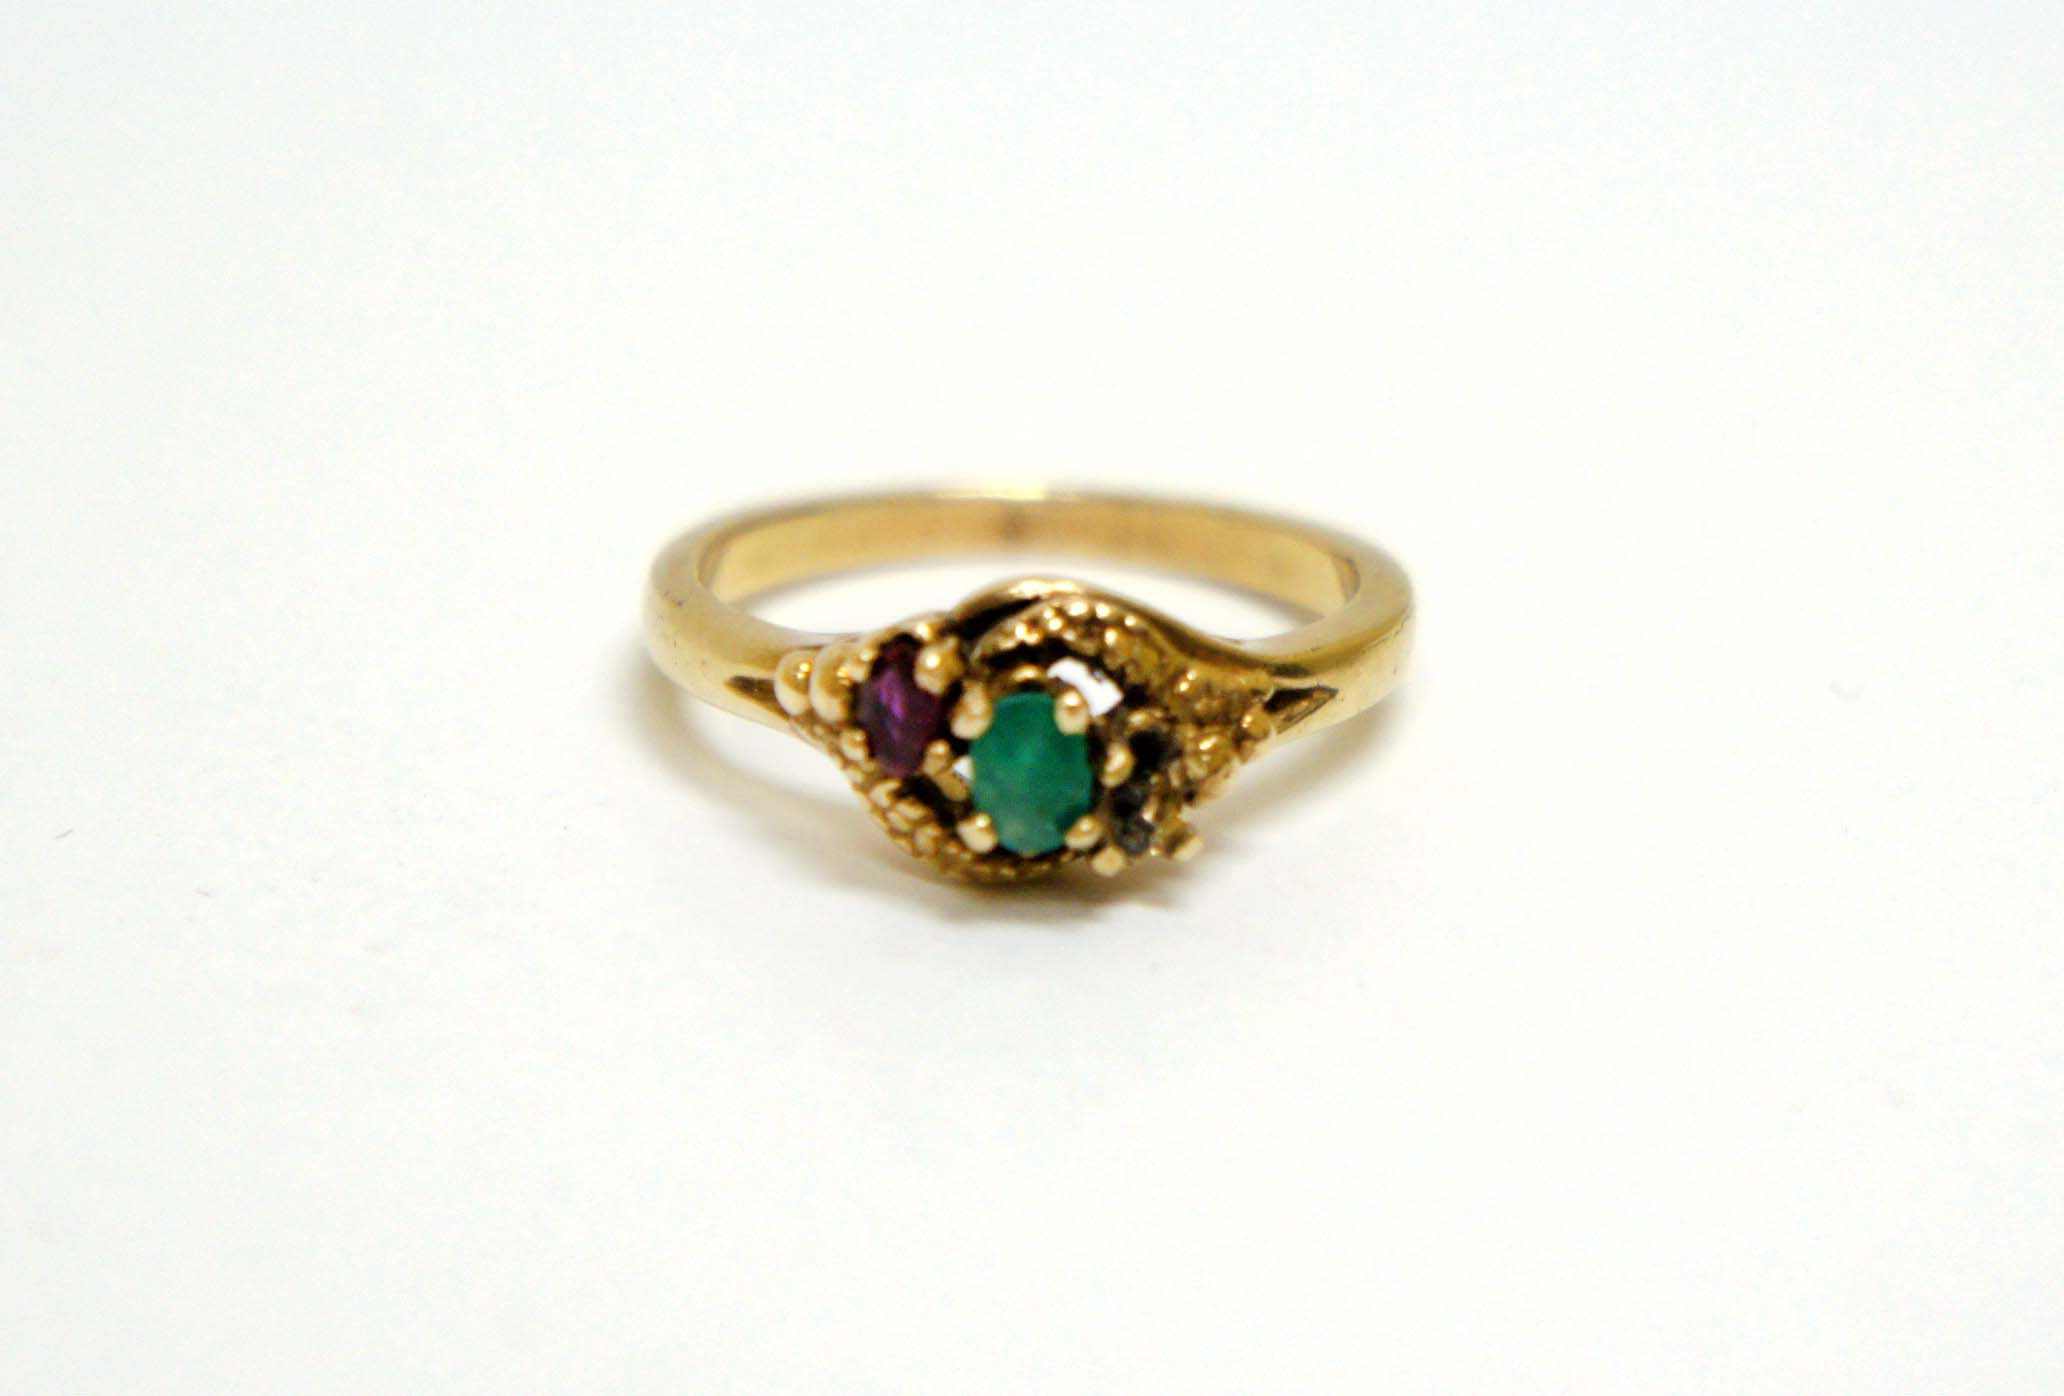 Vintage Gold And Emerald Ring